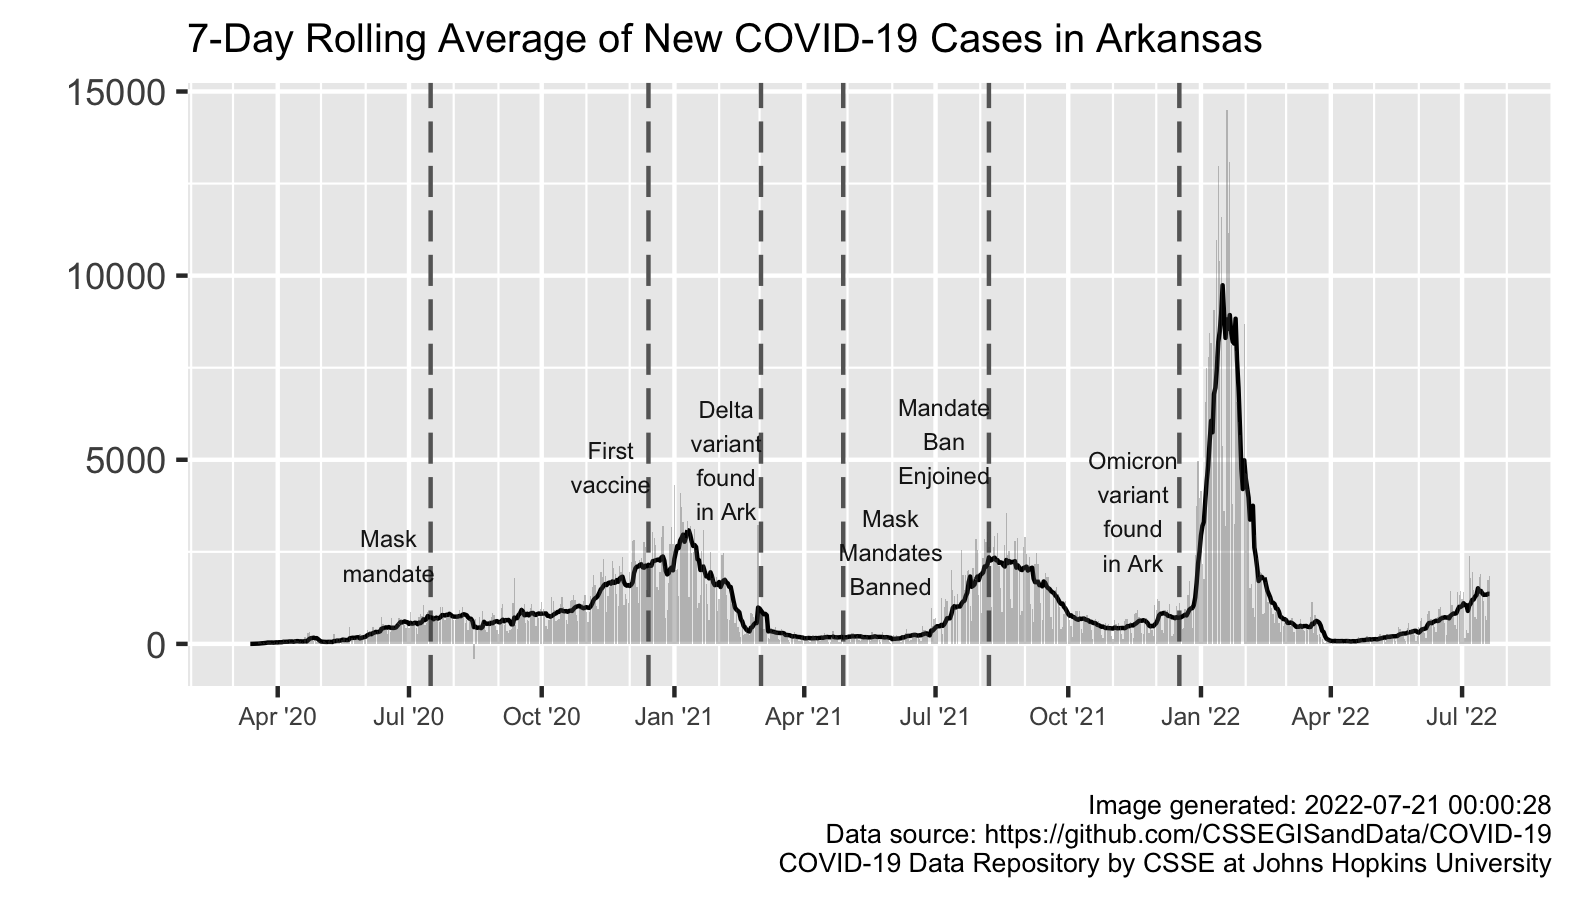 7-day rolling average of new COVID-19 cases in Arkansas